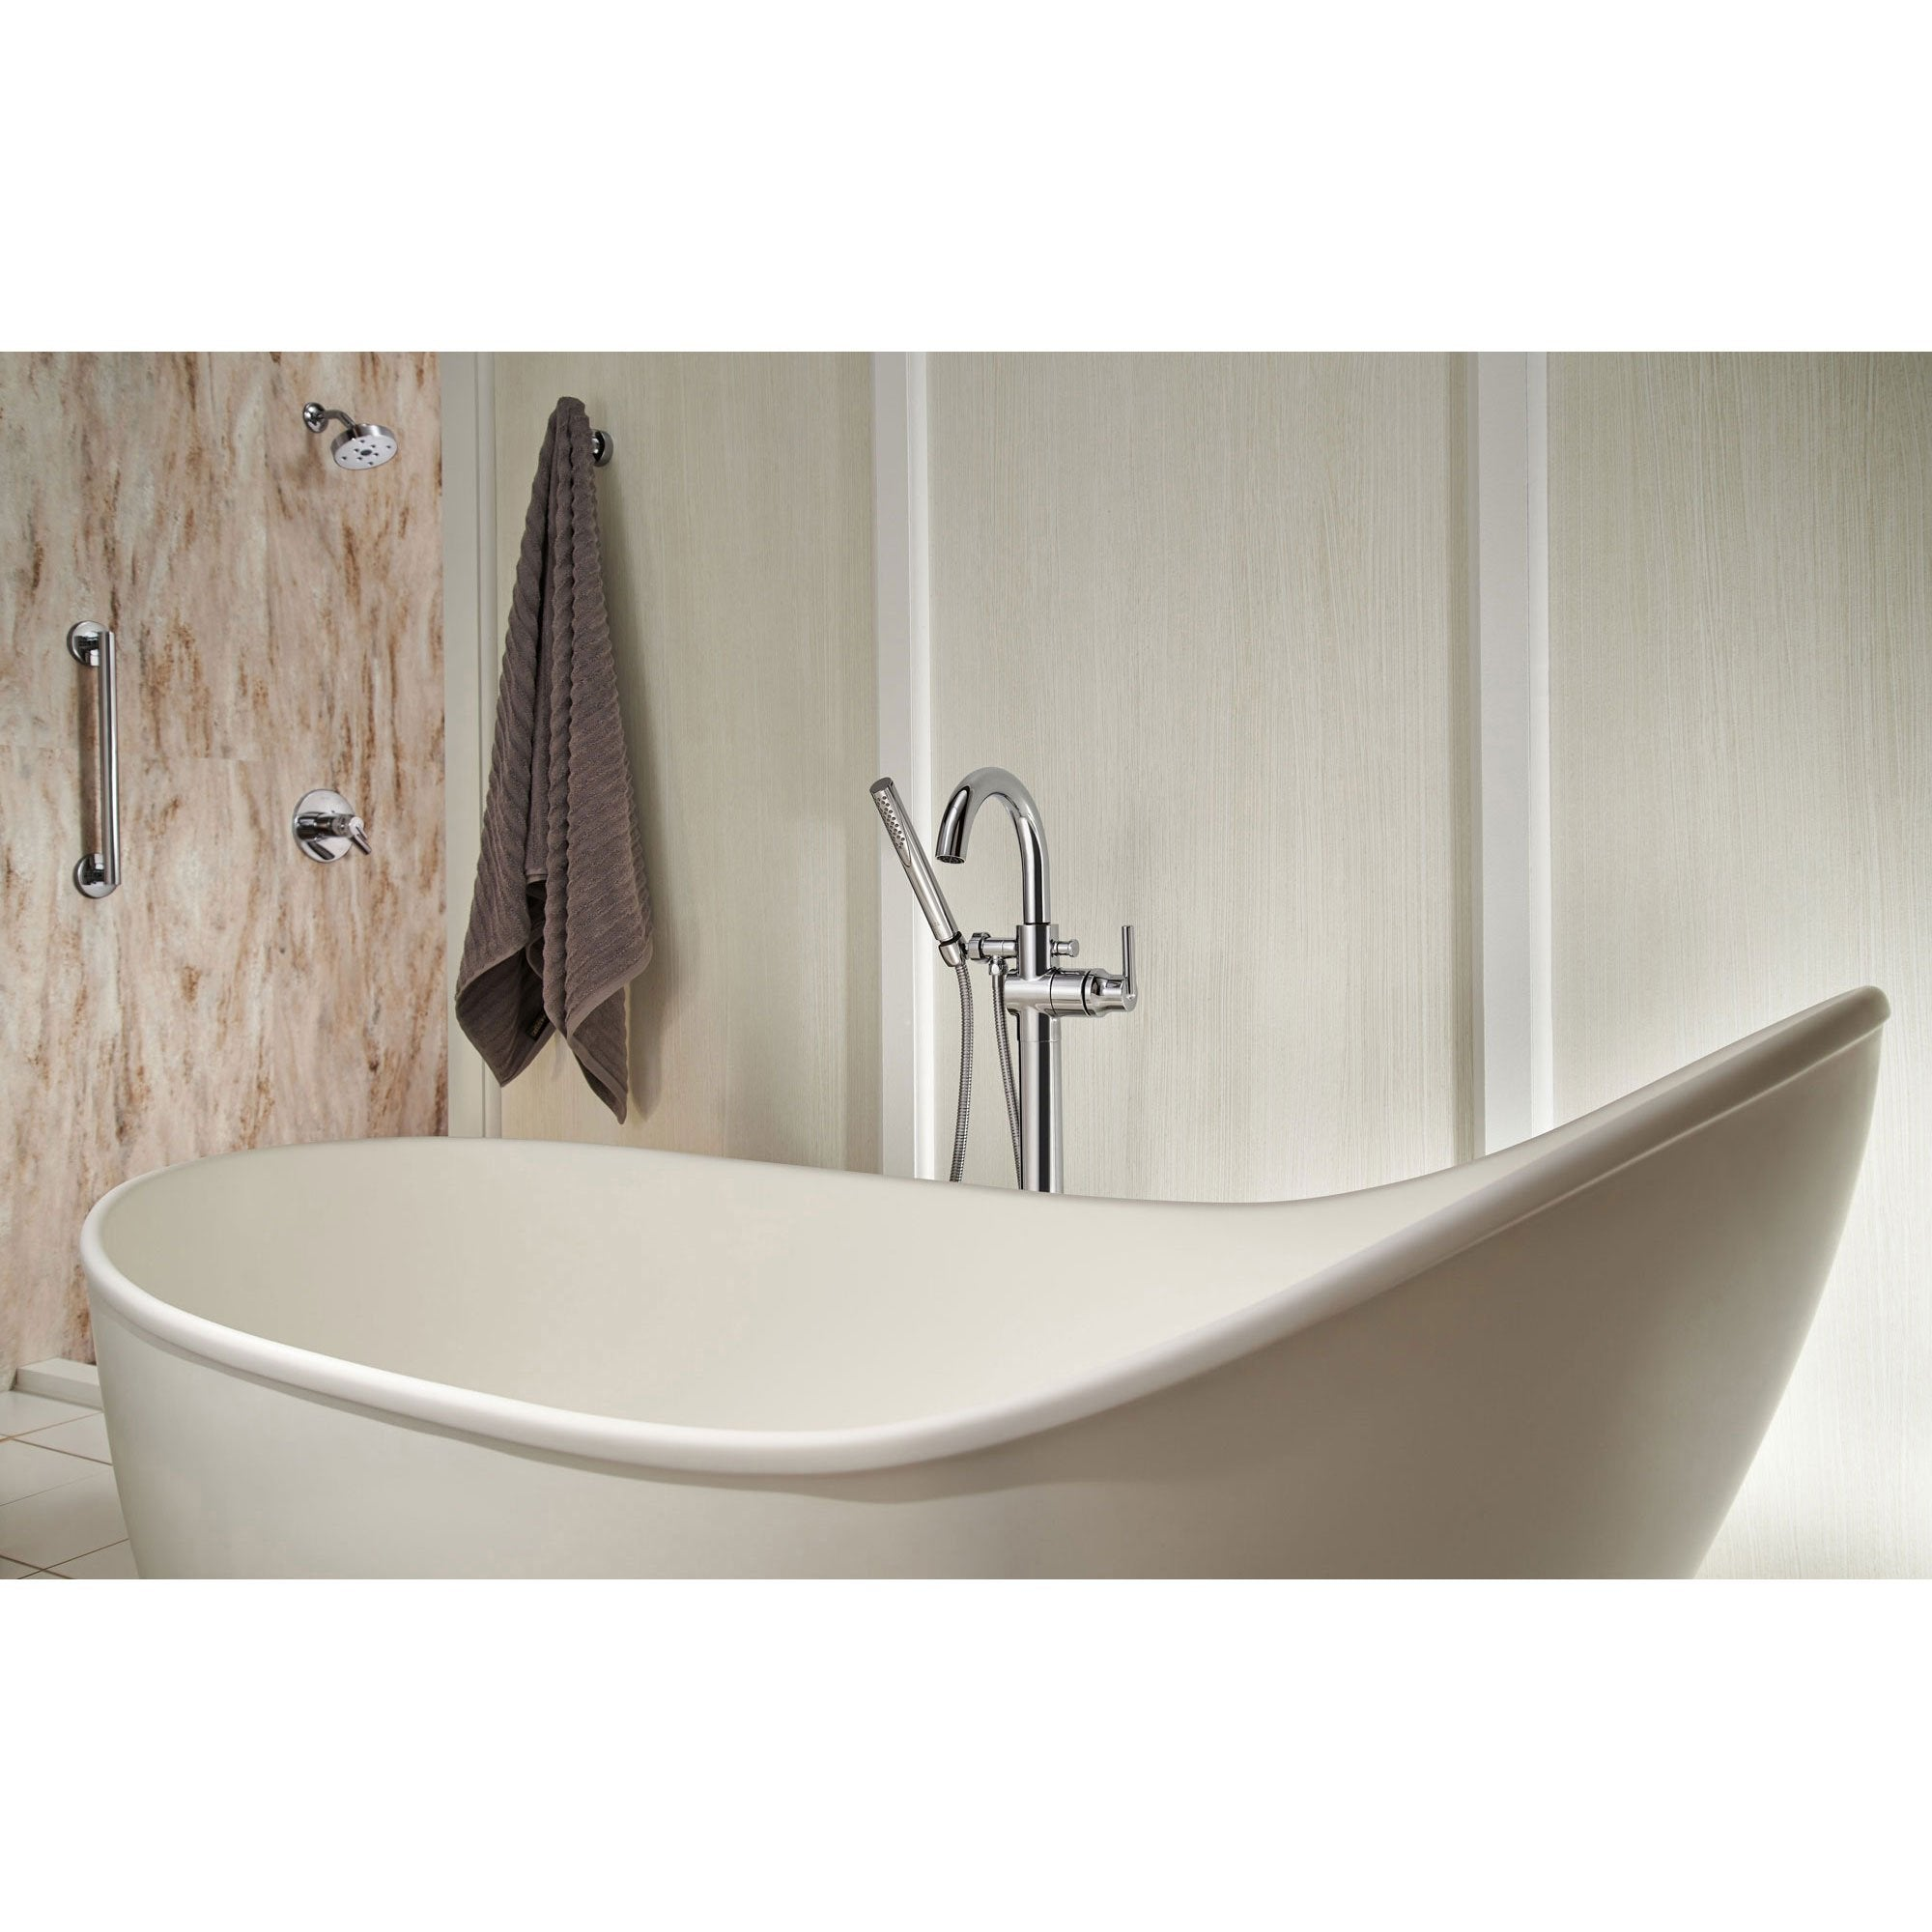 Delta Trinsic Chrome Floor Mount Freestanding Tub Filler Faucet with ...